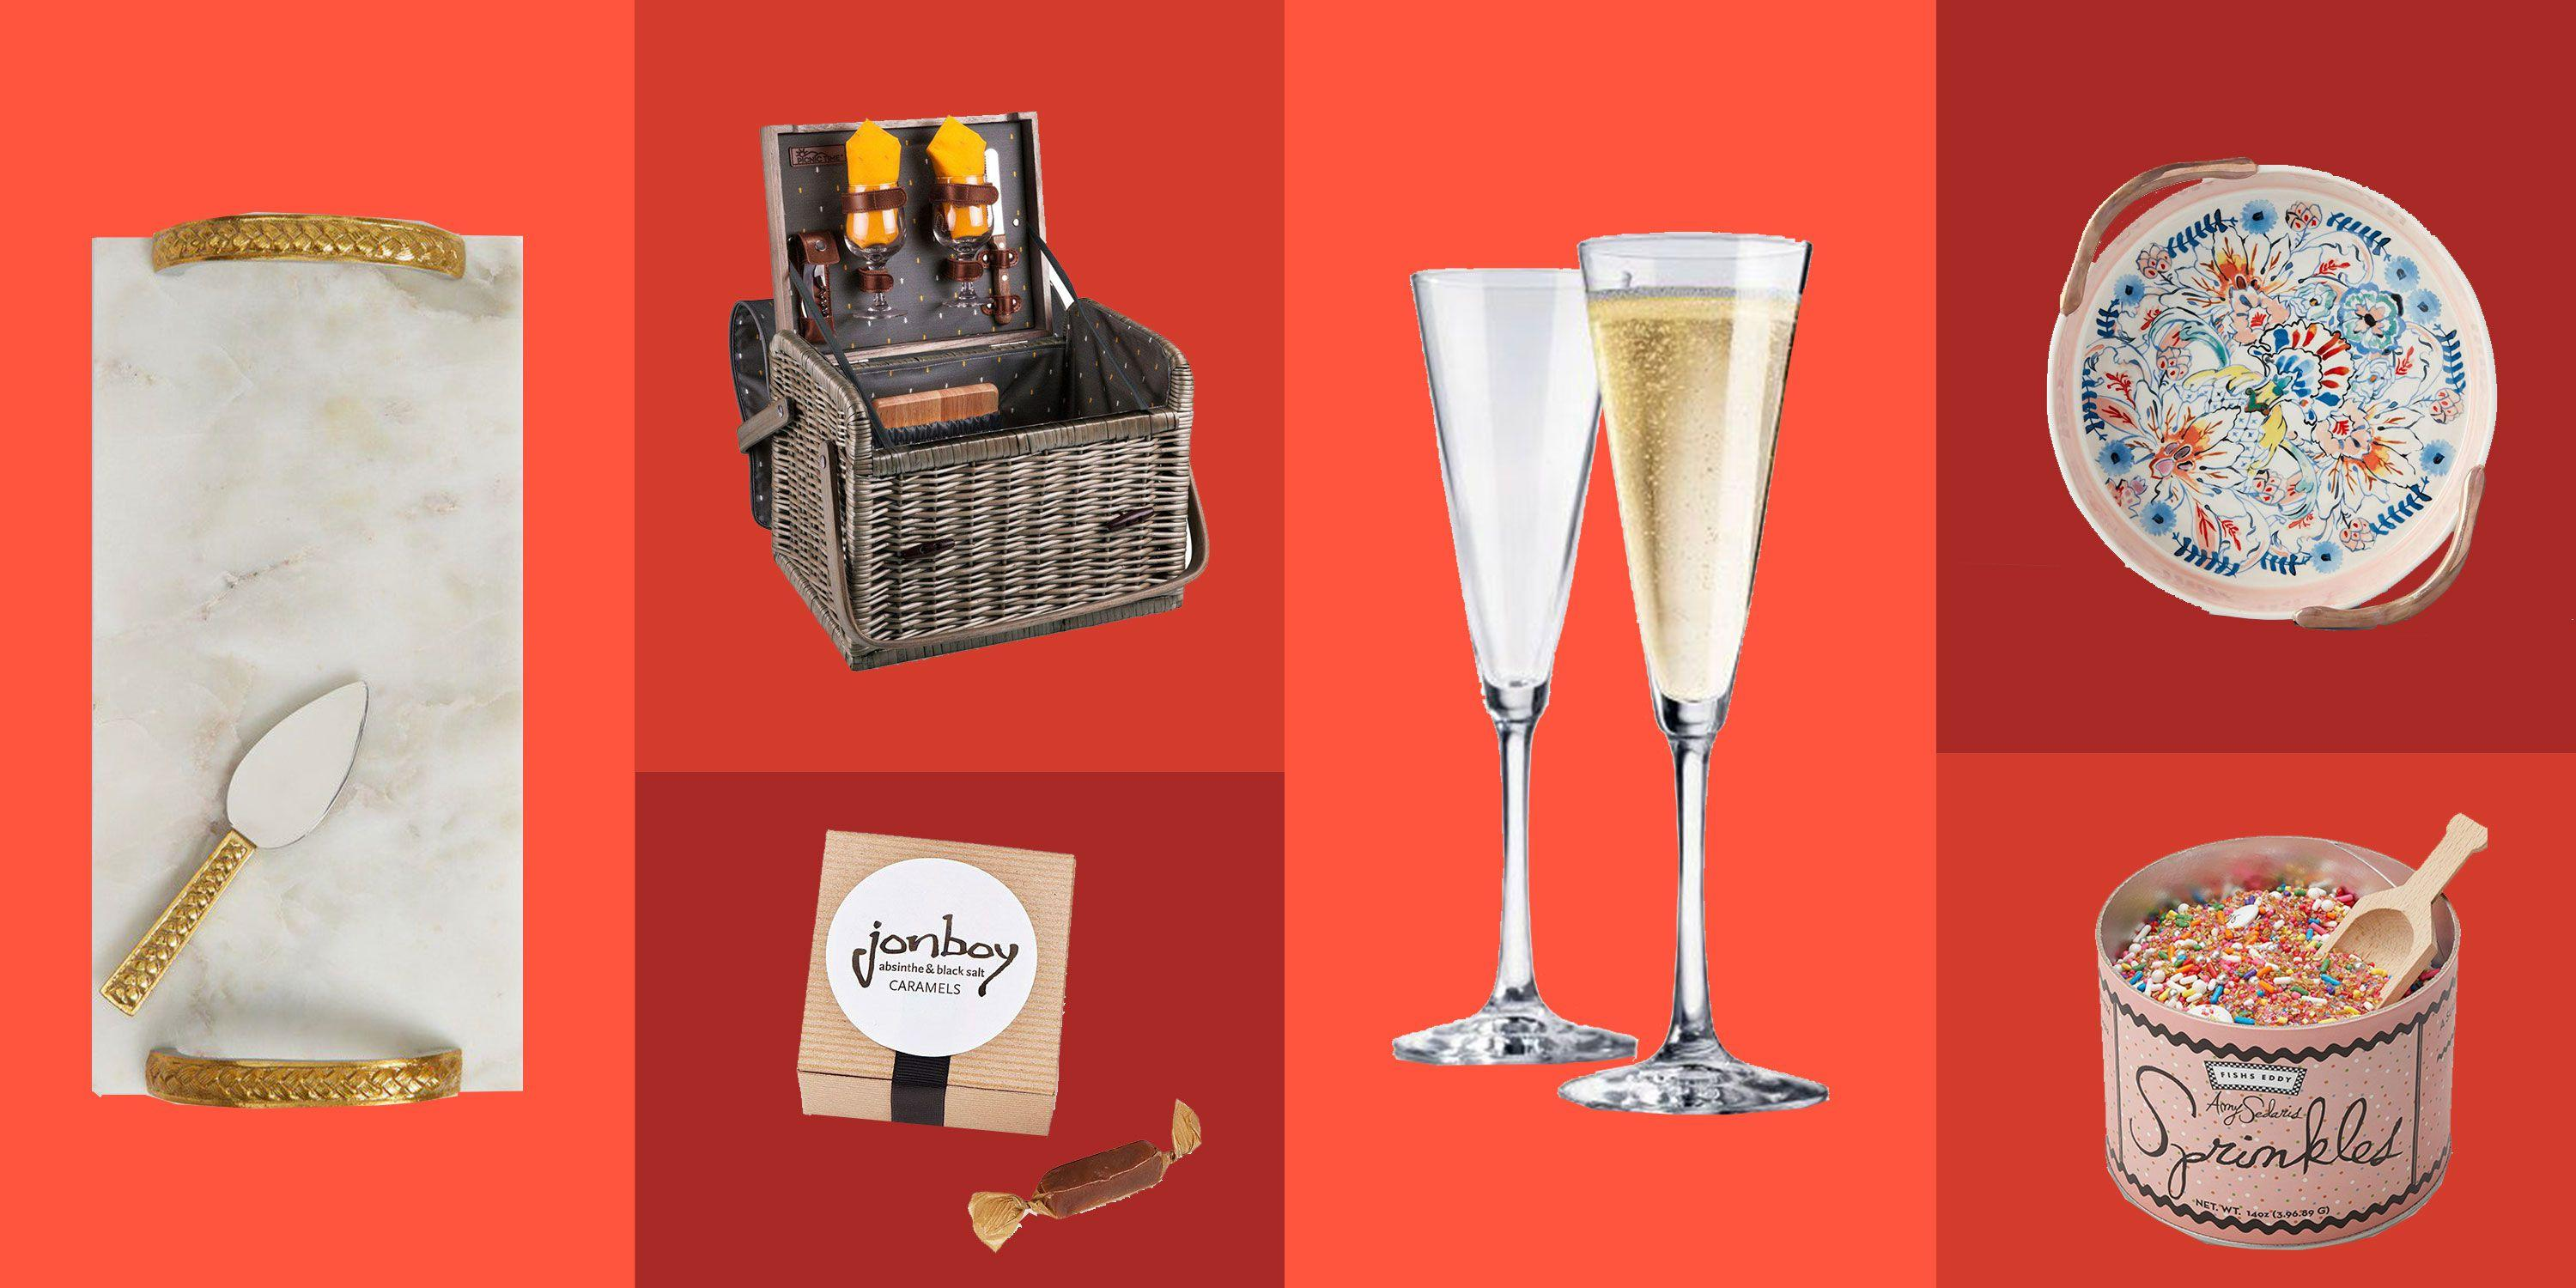 """<p>Party planners take one for the team and deal with alllll the logistics so everyone else can show up and have a good time. Reward their hard work this holiday season with one of these sweet, thoughtful gifts. For more gift ideas, browse our <a href=""""https://www.delish.com/holiday-recipes/christmas/g1704/american-state-gifts/"""" rel=""""nofollow noopener"""" target=""""_blank"""" data-ylk=""""slk:food gifts from all 50 states"""" class=""""link rapid-noclick-resp"""">food gifts from all 50 states</a> and <a href=""""https://www.delish.com/holiday-recipes/christmas/g2522/cheap-kitchen-gifts/"""" rel=""""nofollow noopener"""" target=""""_blank"""" data-ylk=""""slk:inexpensive kitchen gifts"""" class=""""link rapid-noclick-resp"""">inexpensive kitchen gifts</a>. Feel like cooking? Gift a batch of <a href=""""https://www.delish.com/holiday-recipes/christmas/g2177/easy-christmas-cookies/"""" rel=""""nofollow noopener"""" target=""""_blank"""" data-ylk=""""slk:homemade cookies"""" class=""""link rapid-noclick-resp"""">homemade cookies</a> this year.</p>"""